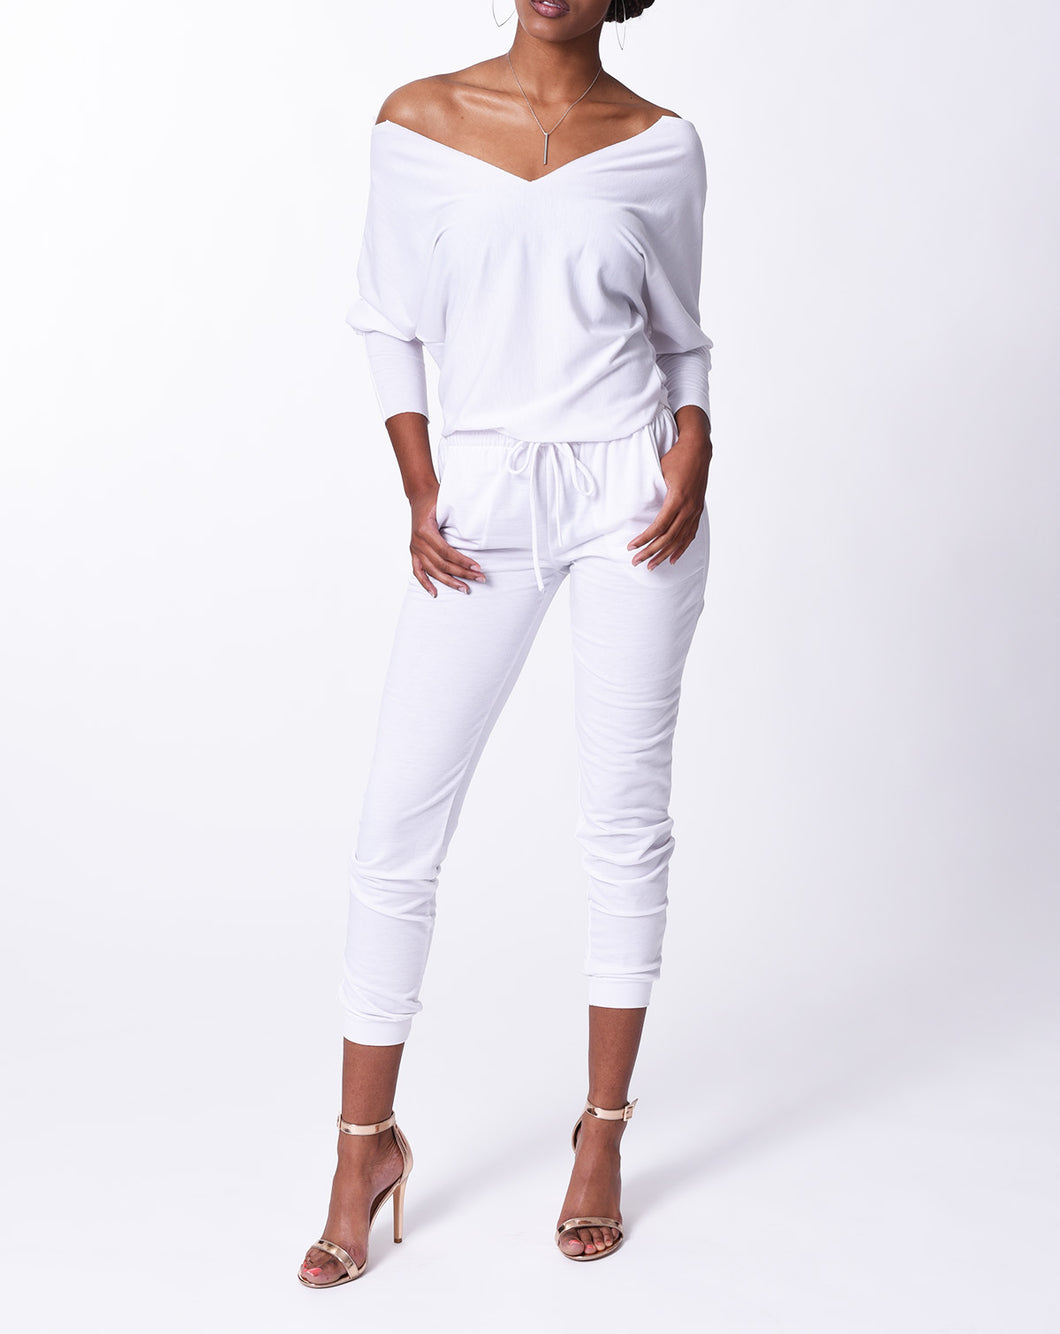 LINDSEY - L/S Top - White